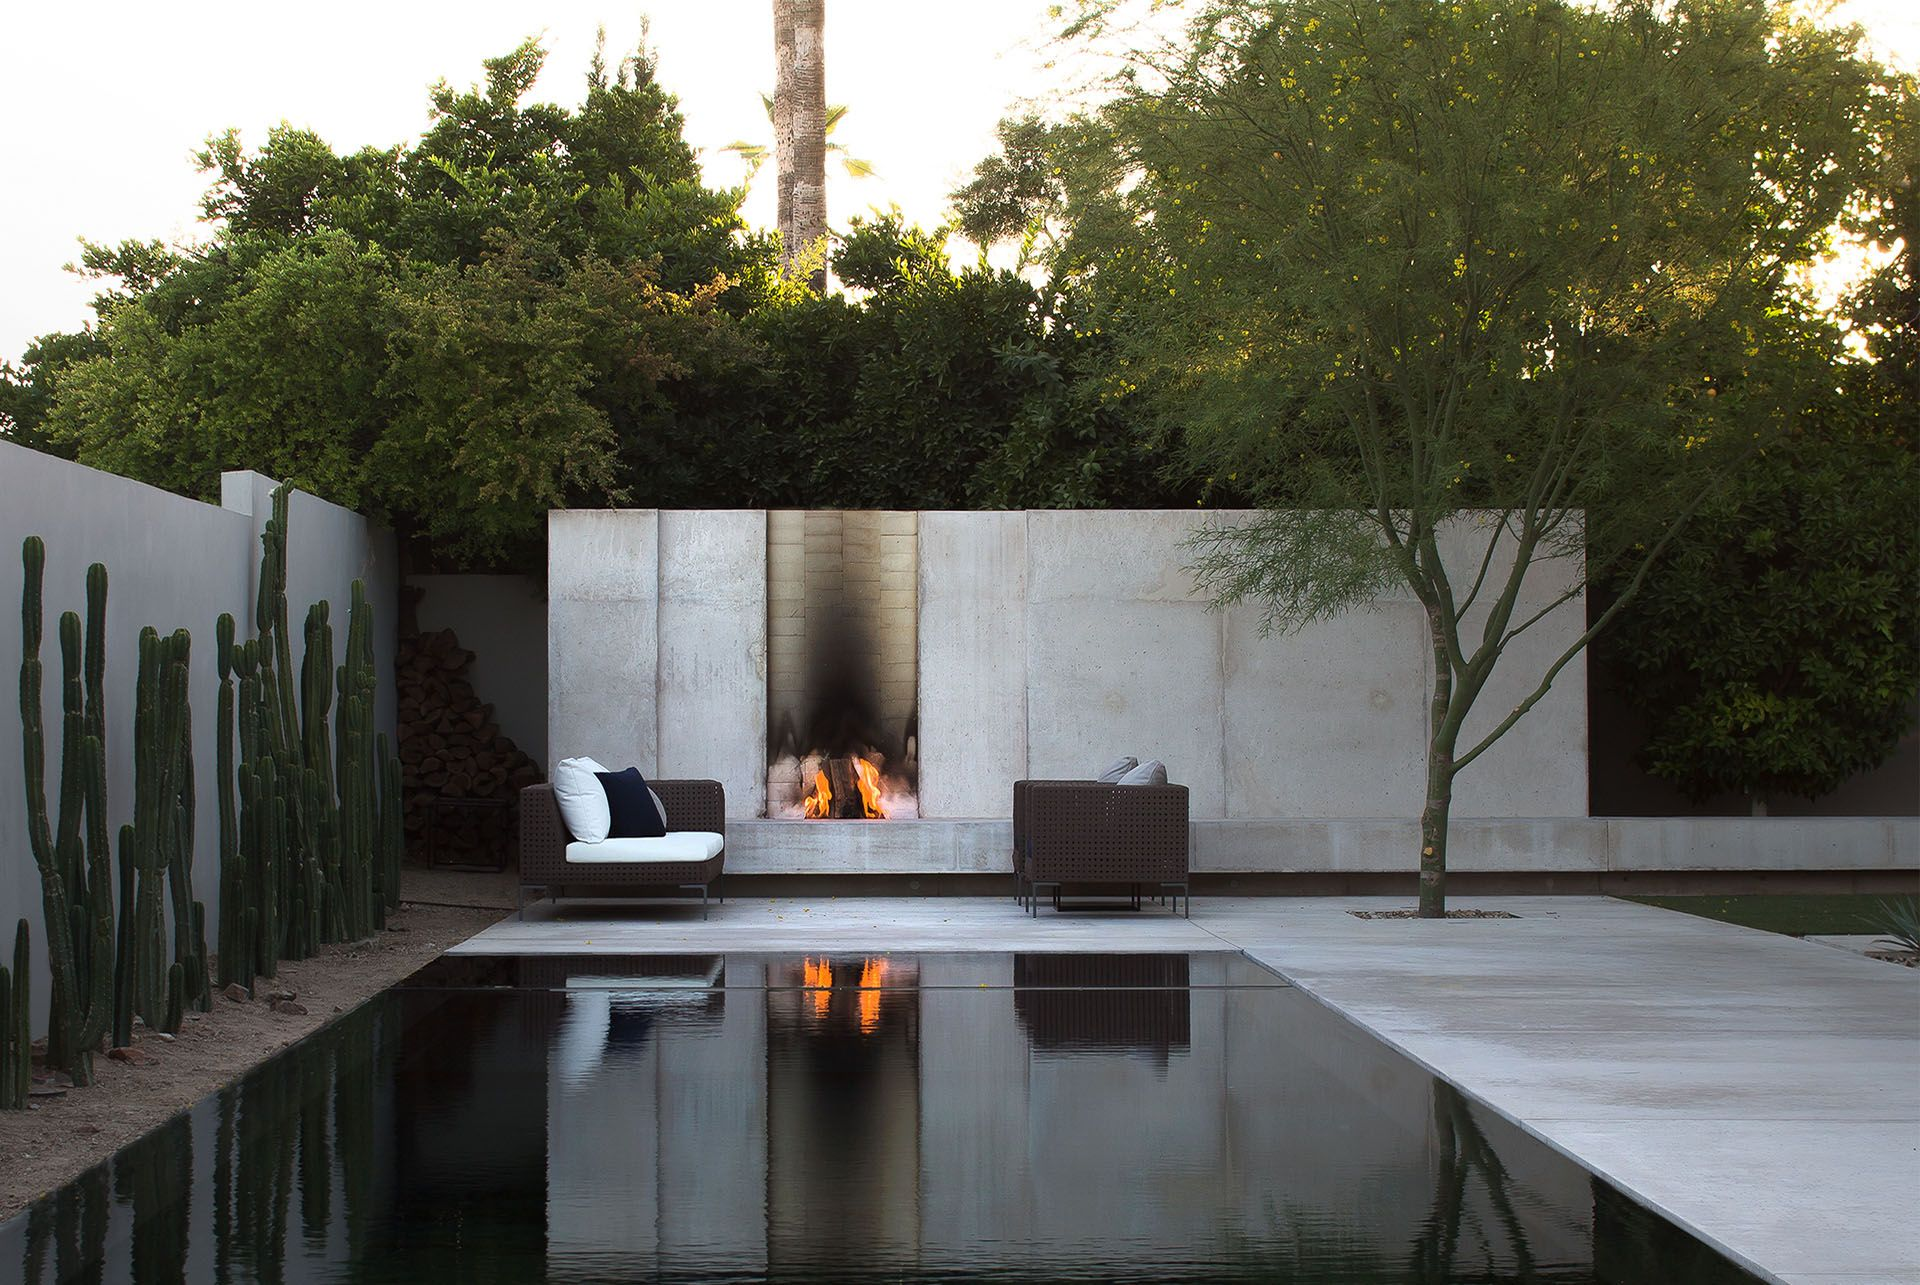 Minimalist design landscape art architecture full imagas for Minimalist landscape design